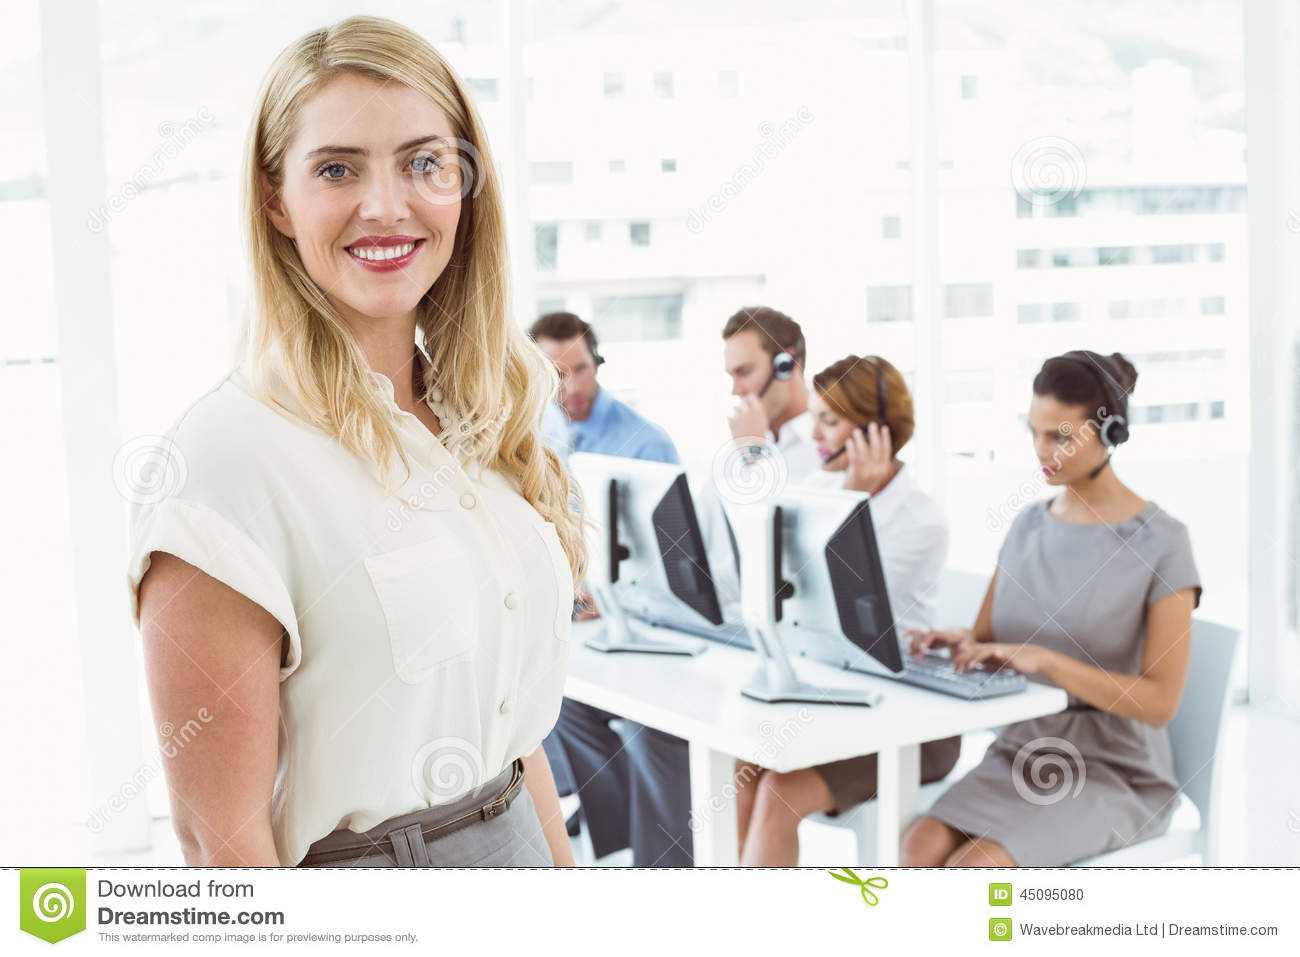 Businesswoman with executives using computers